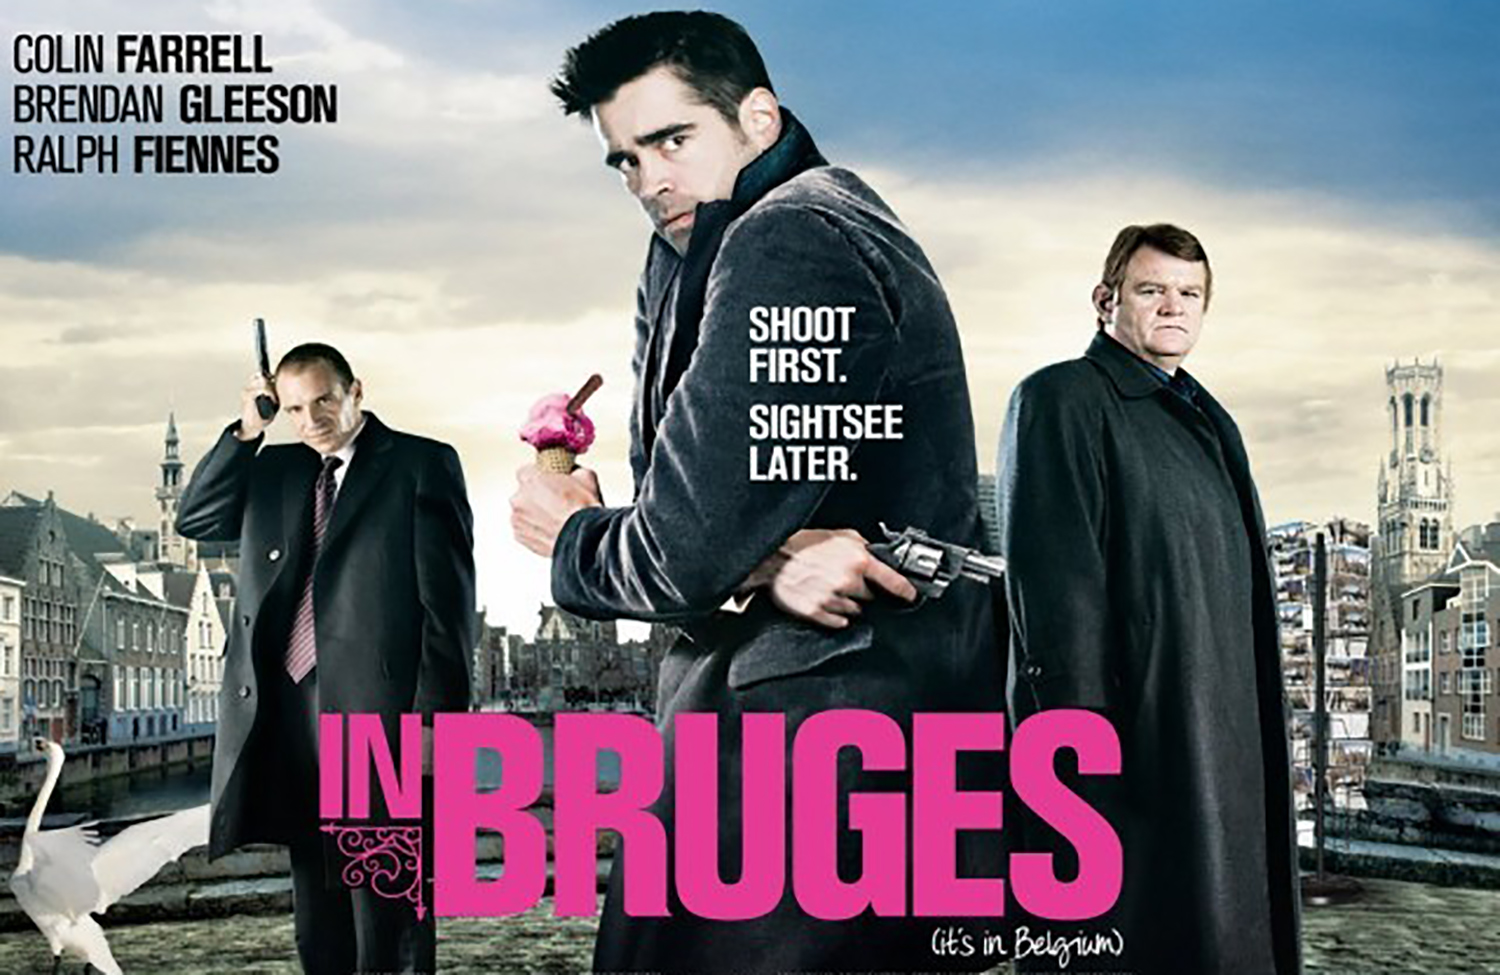 In Bruges — the movie sparked my interest in Brugge